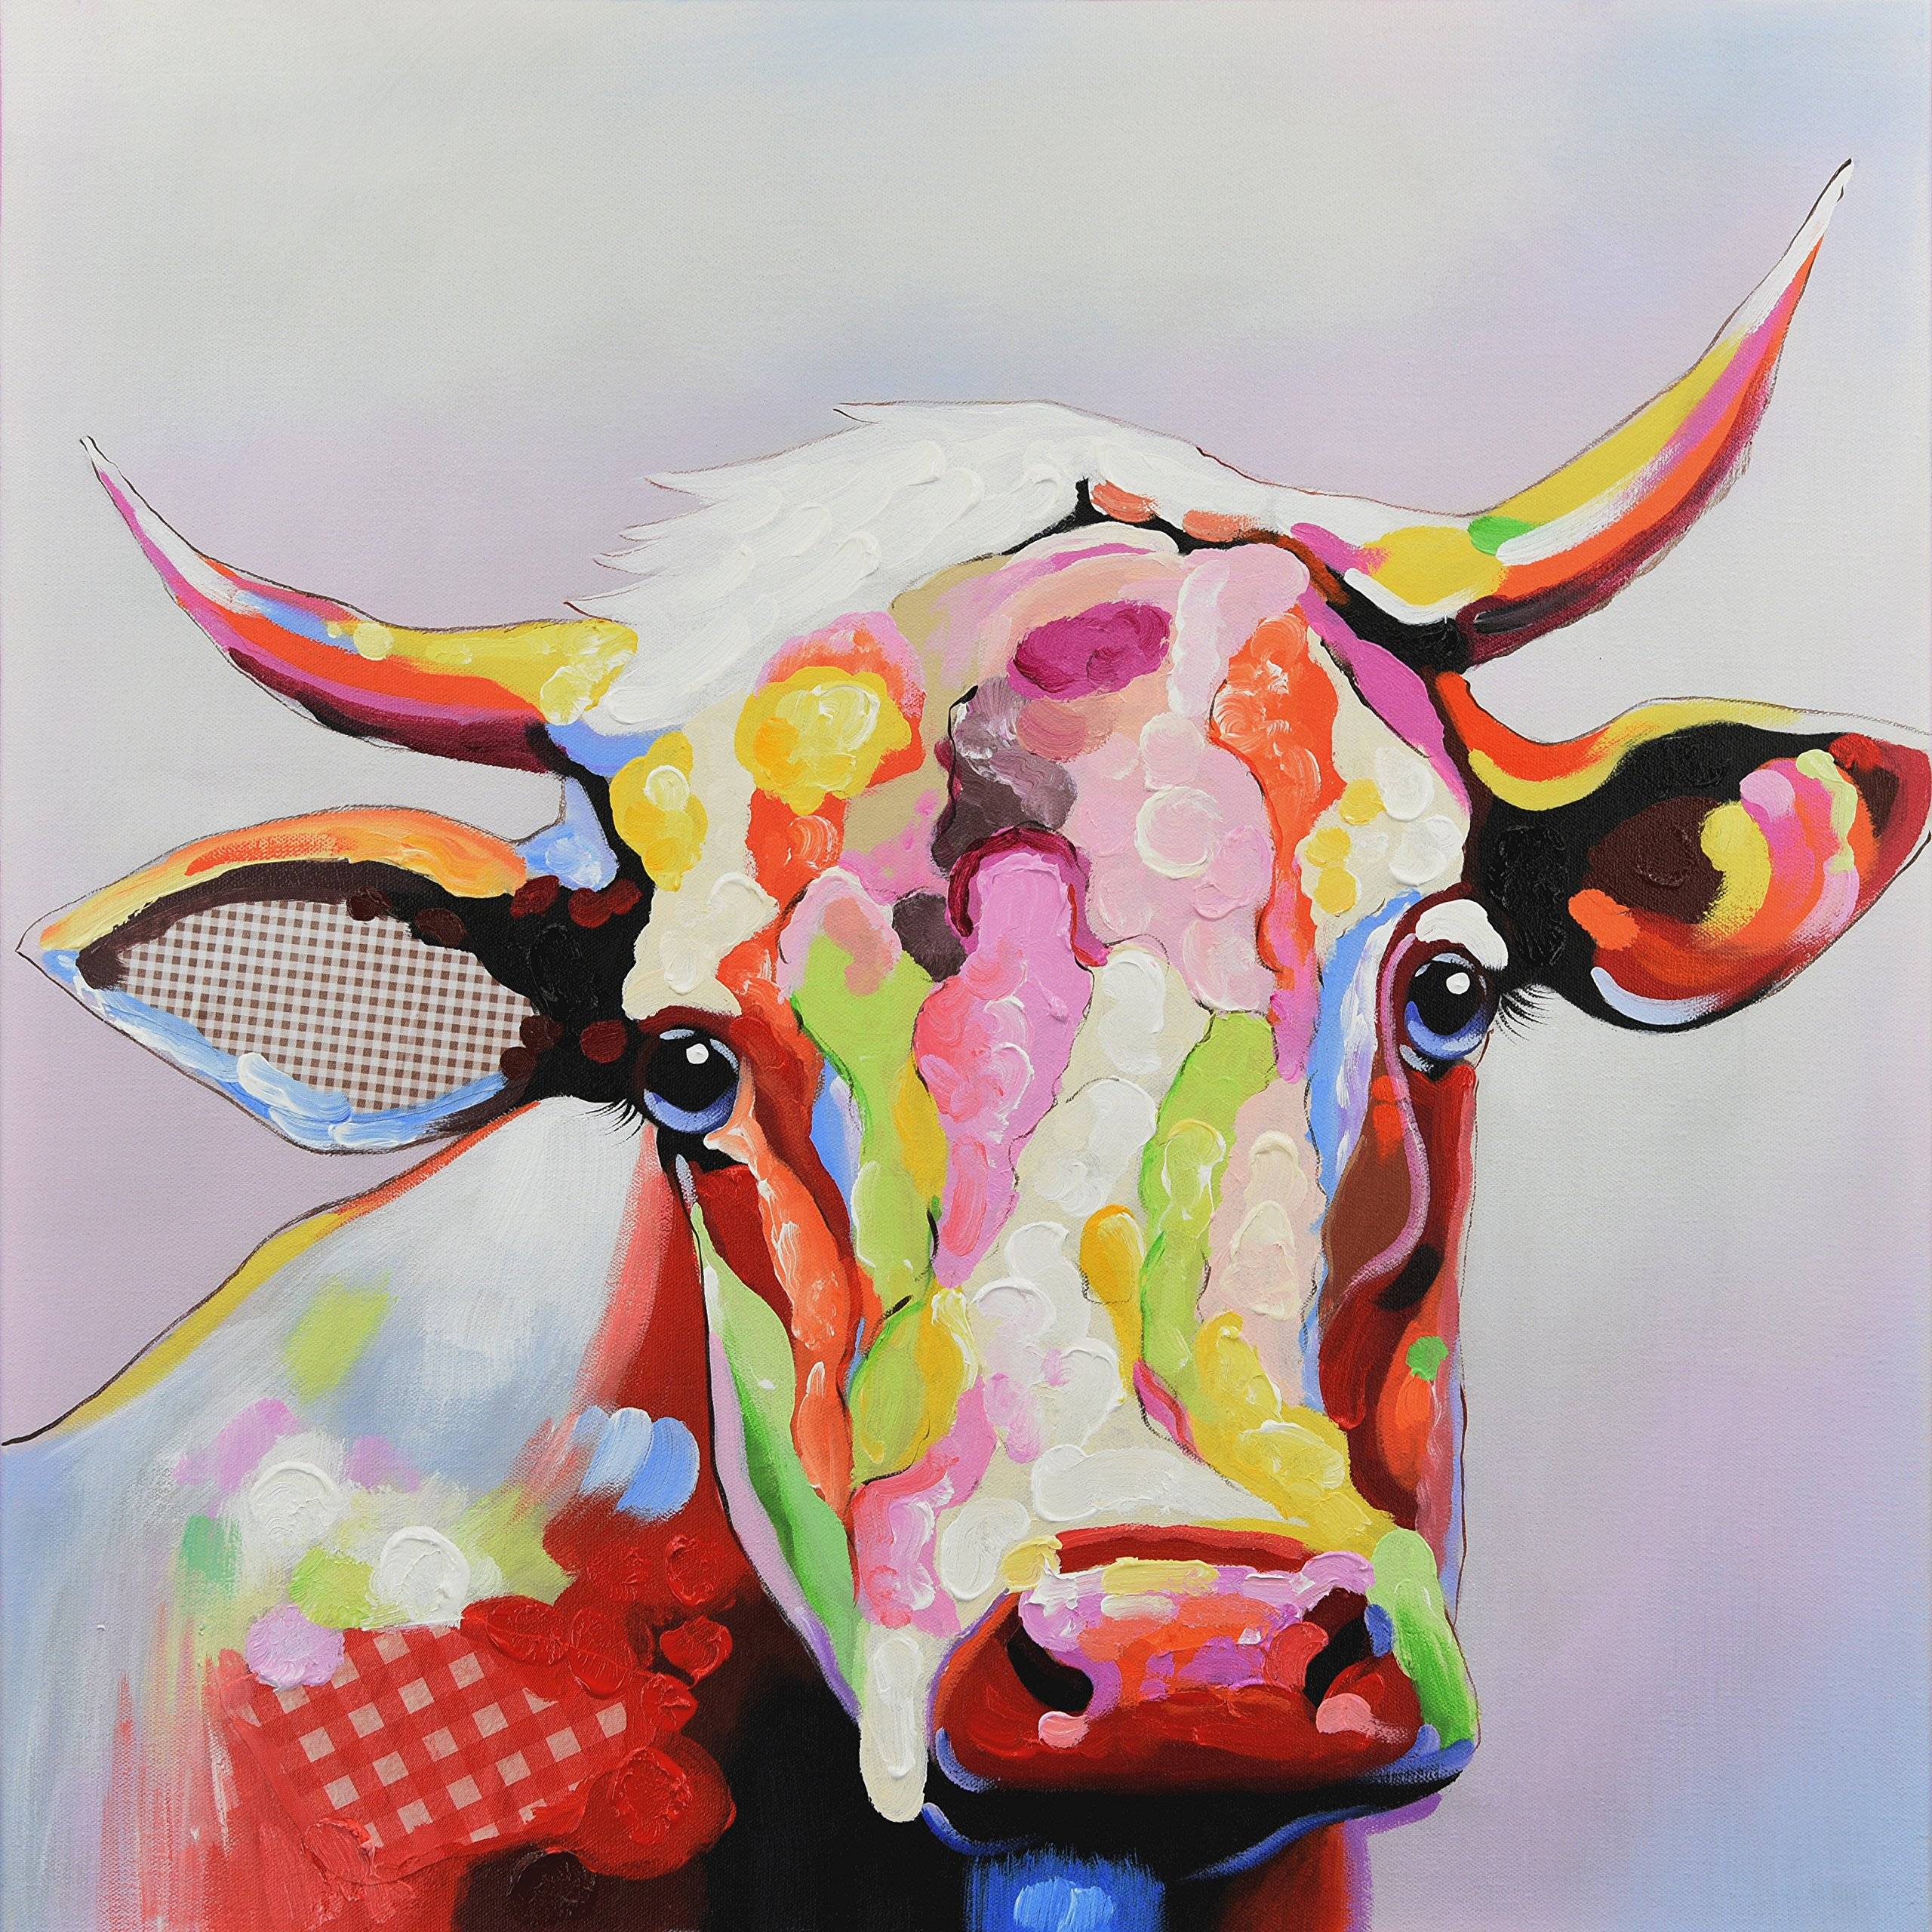 SEVEN WALL ARTS 100% Hand Painted Oil Painting Animal Stretched and Framed Ready to Hang for Living Room for Home Decor (32 x 32 Inch, Colorful Cow)